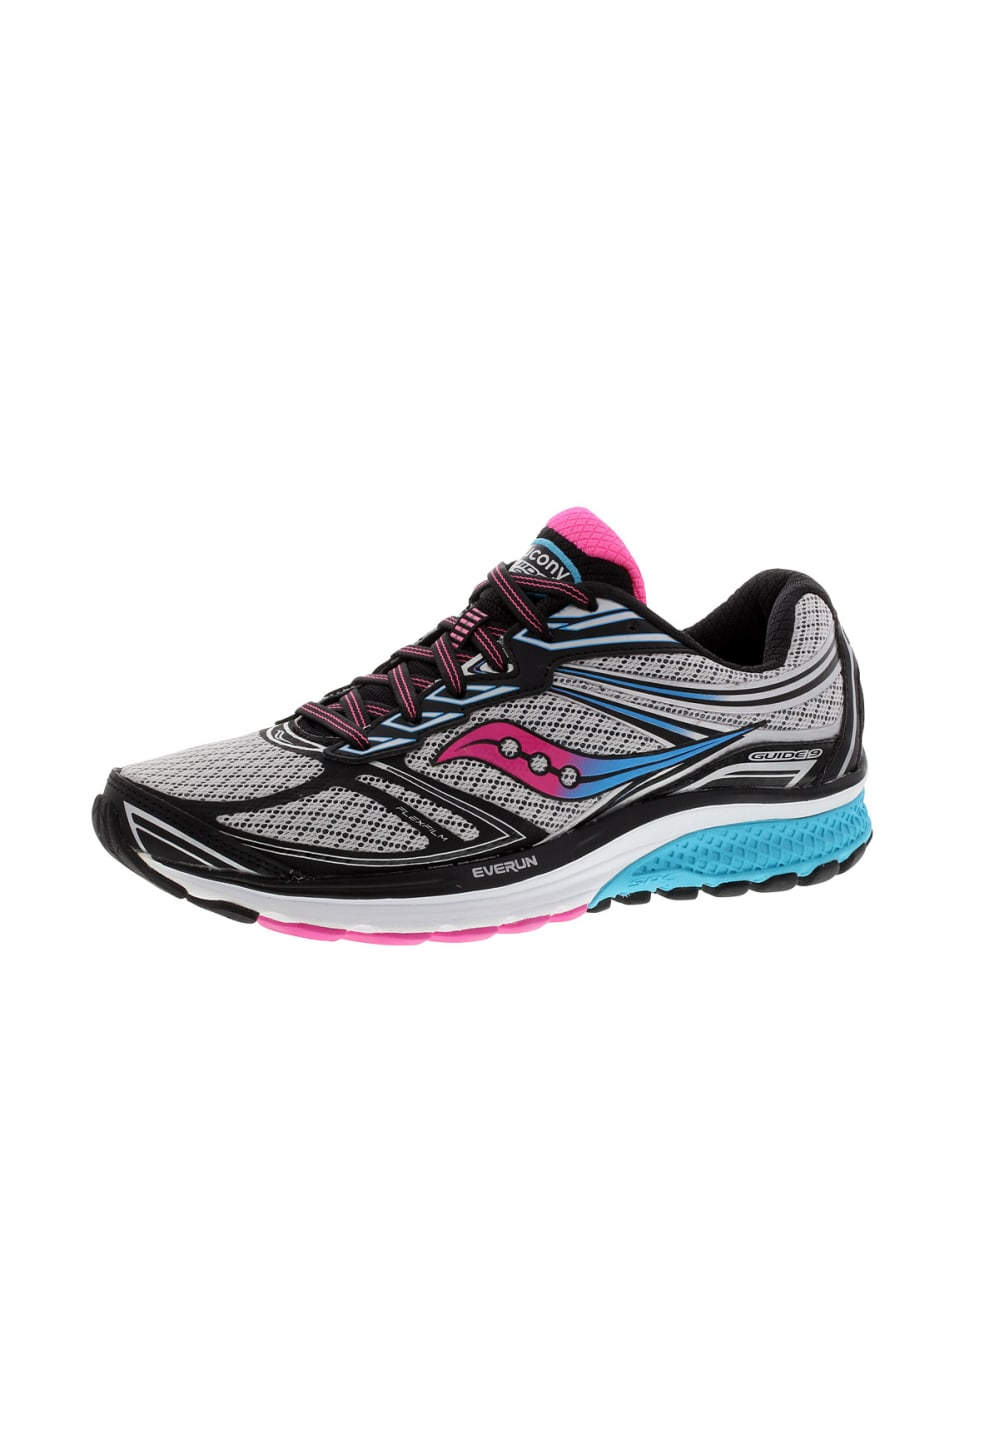 14957e00d5ac Saucony Guide 9 - Running shoes for Women - Grey